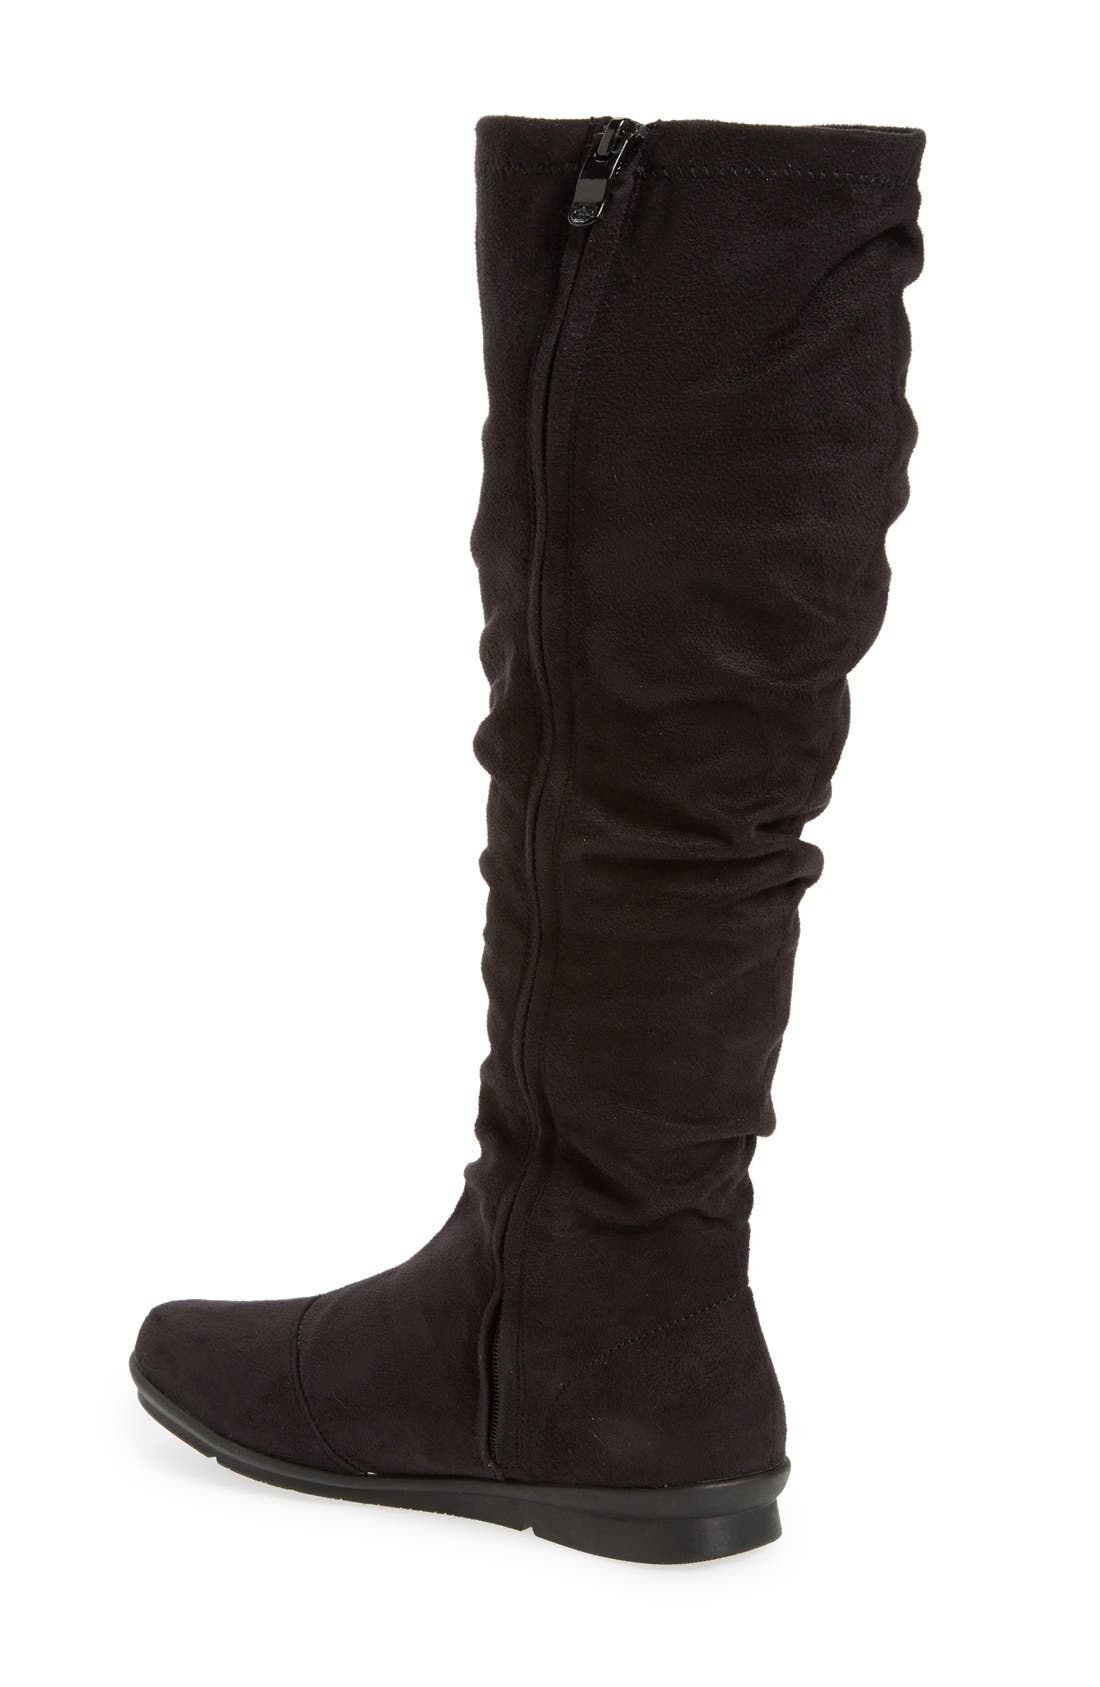 BUSSOLA,                             'Creta' Water Resistant Slouchy Knee-High Boot,                             Alternate thumbnail 3, color,                             001